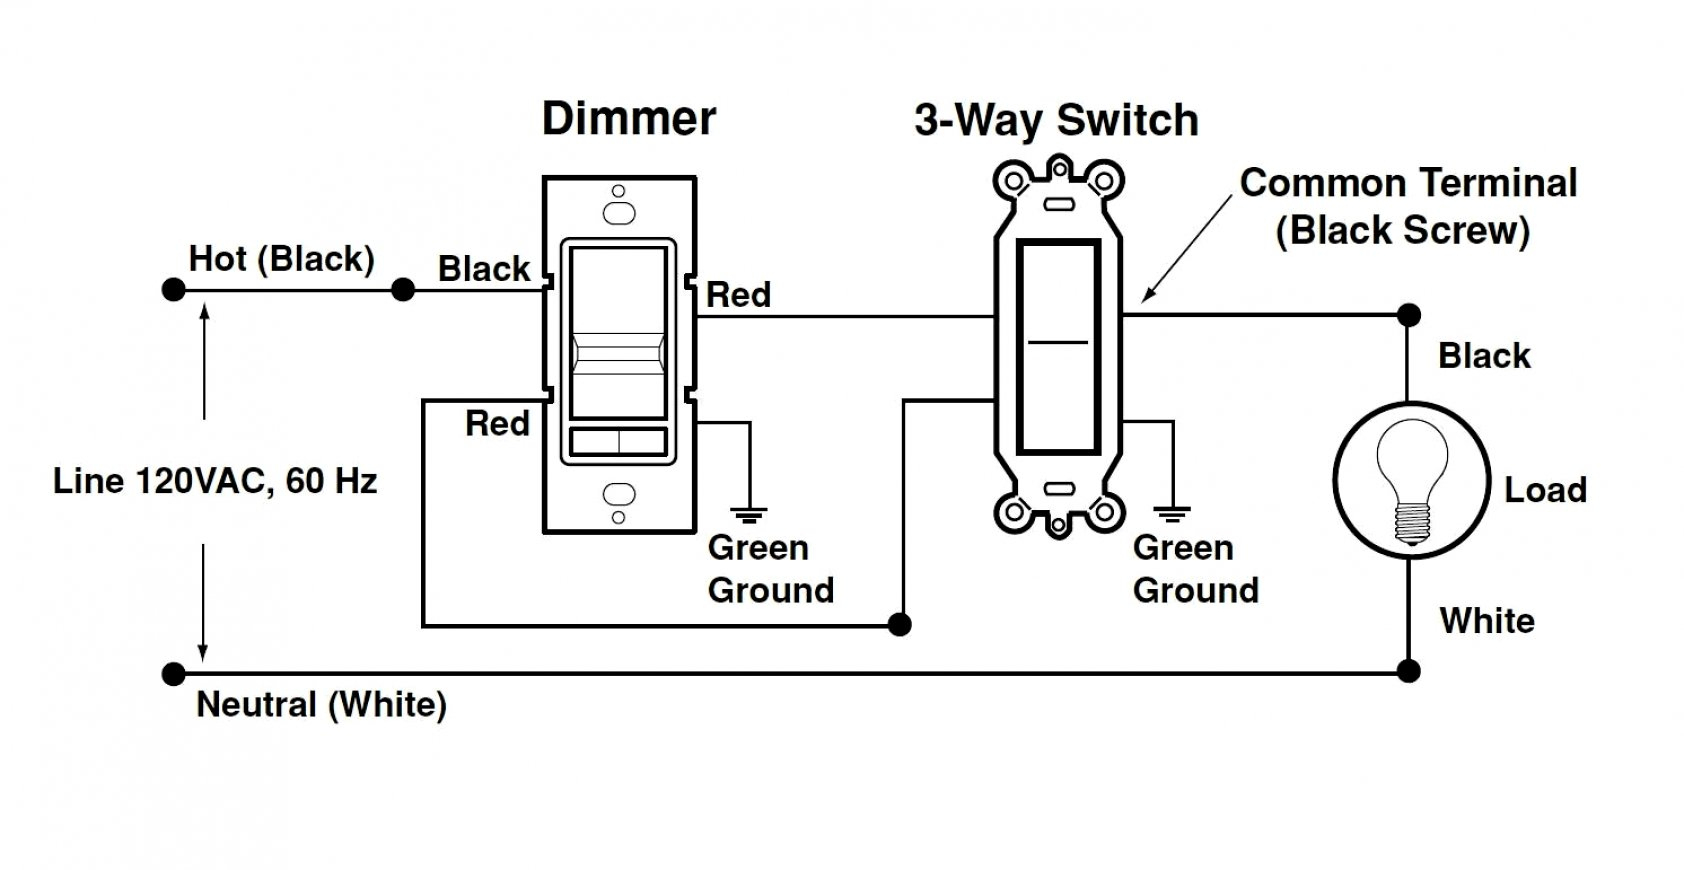 To Single Pole Dimmer Lutron 3 Way Switch Wiring Diagram | Wiring - Single Pole Dimmer Switch Wiring Diagram